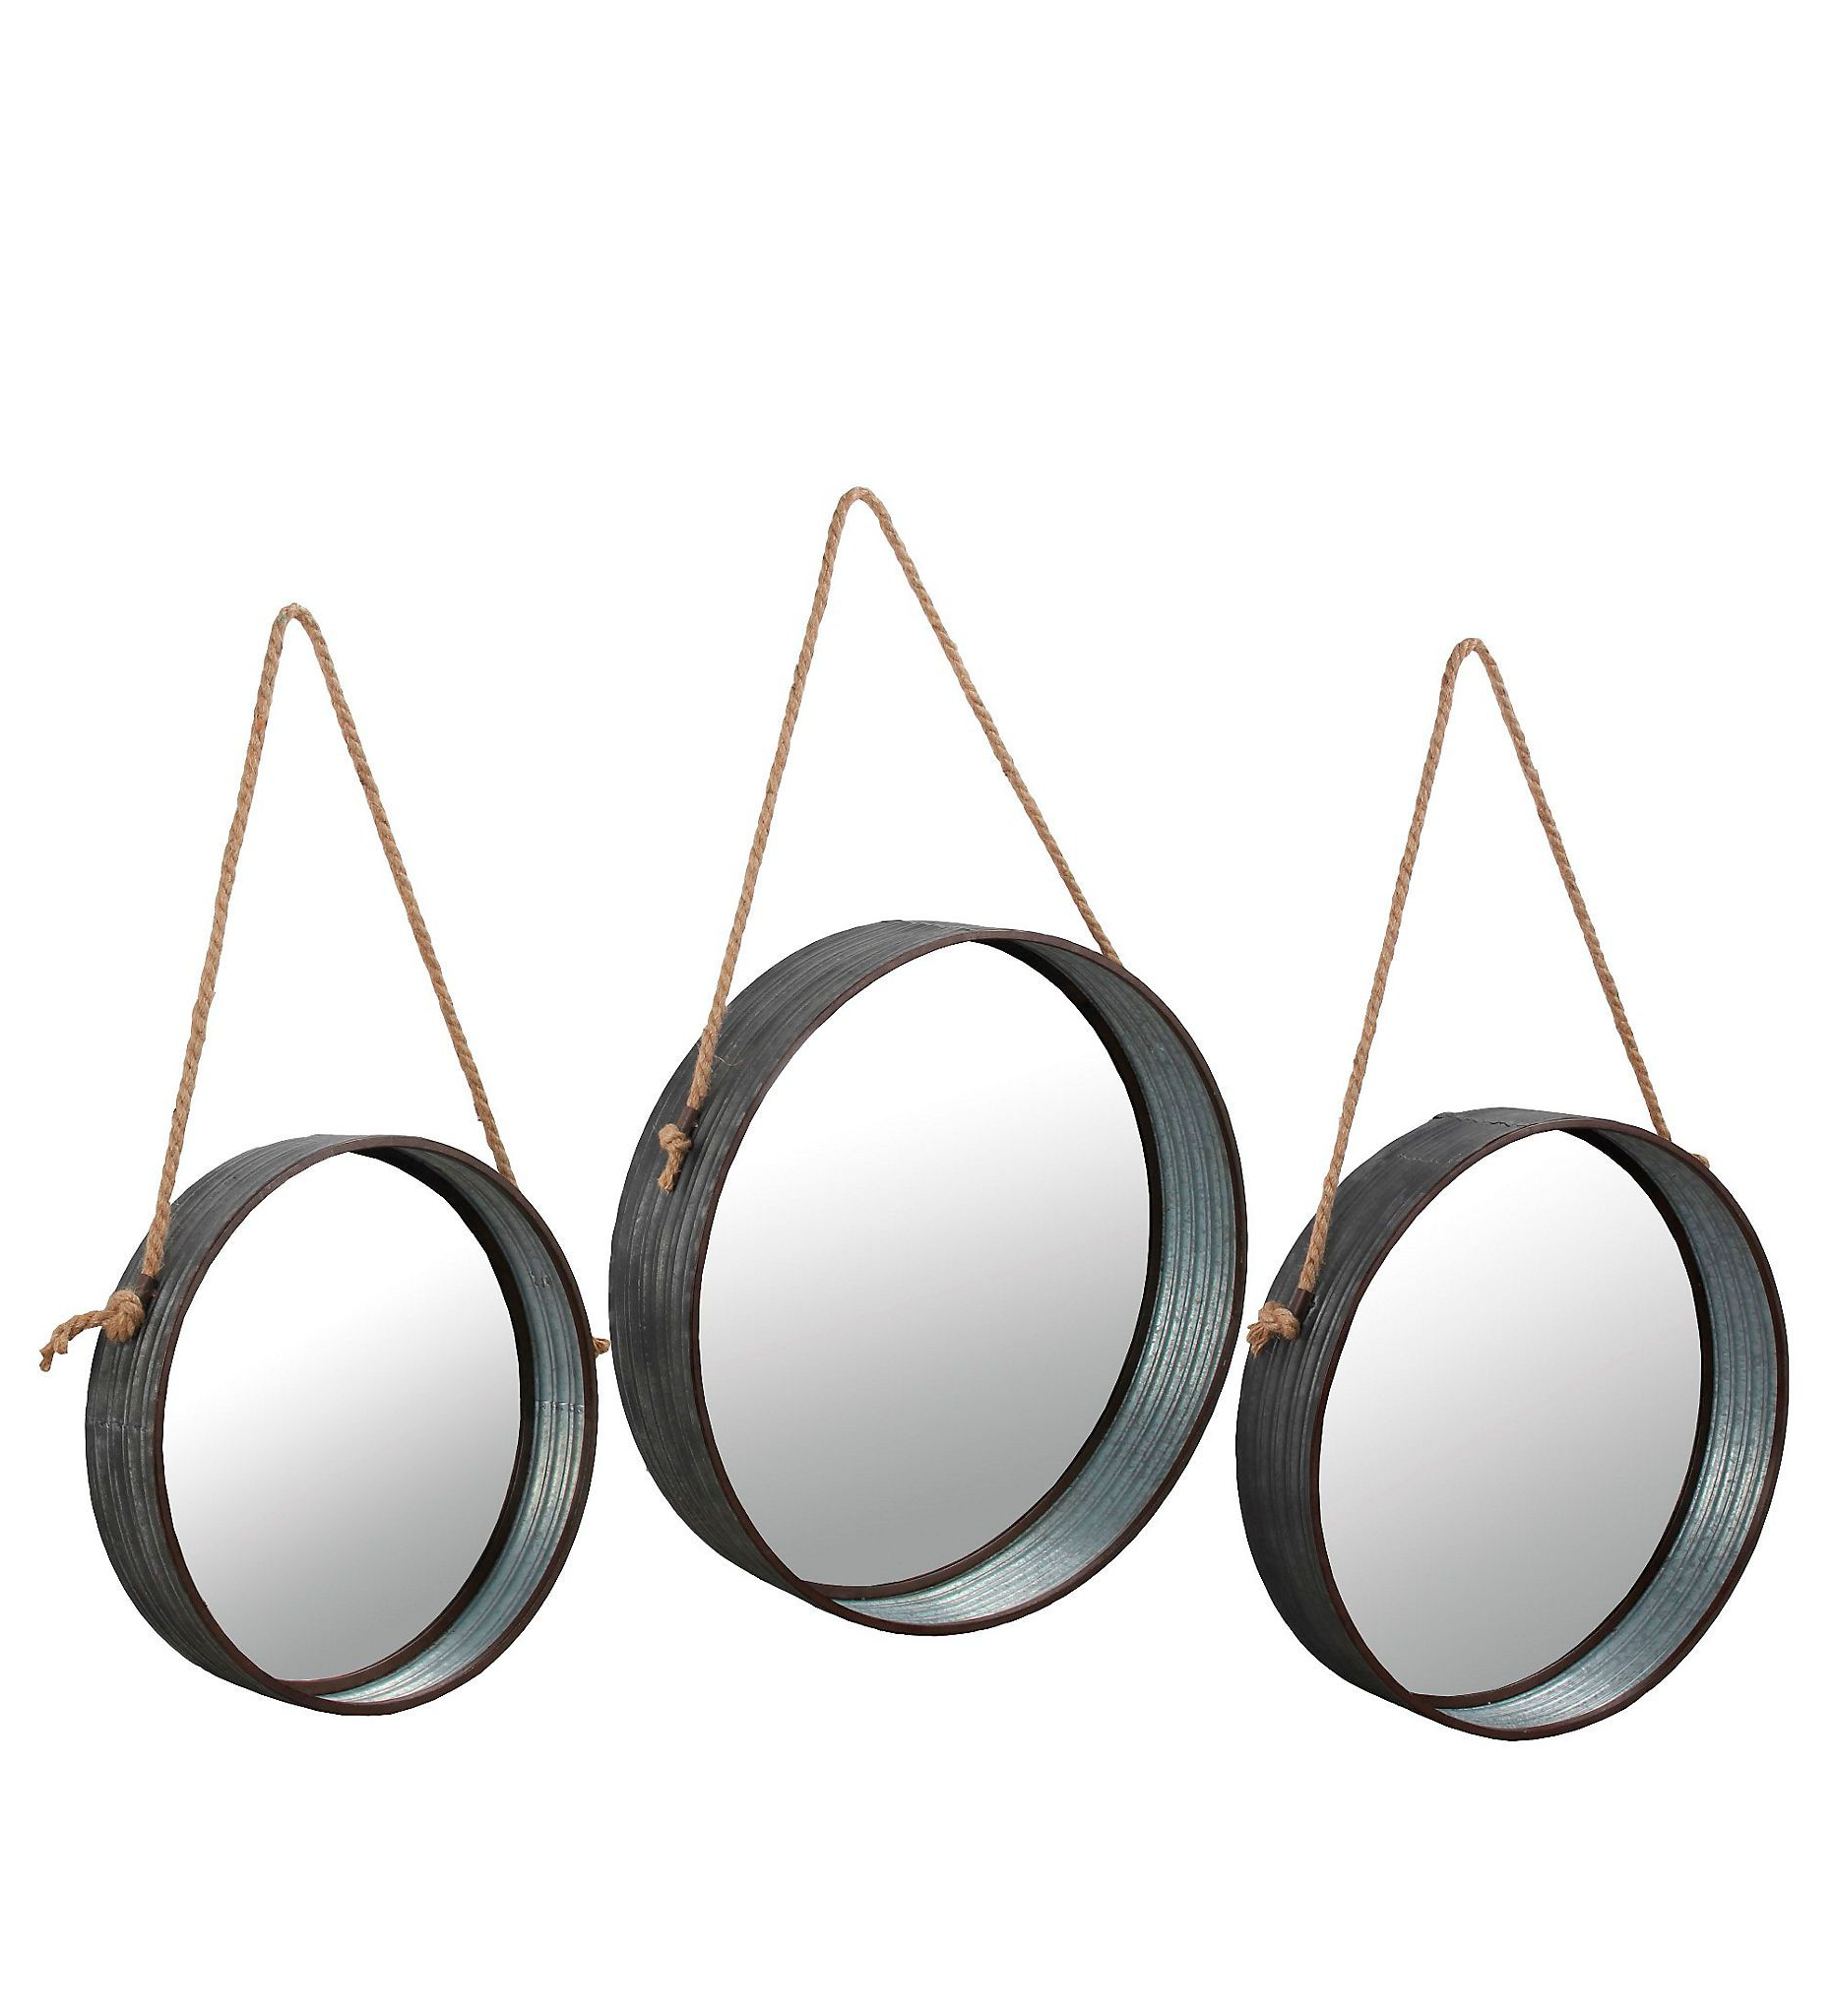 Current Round Galvanized Metallic Wall Mirrors Pertaining To Product Details Galvanized Metal Round Wall Mirrors, Set Of (View 10 of 20)